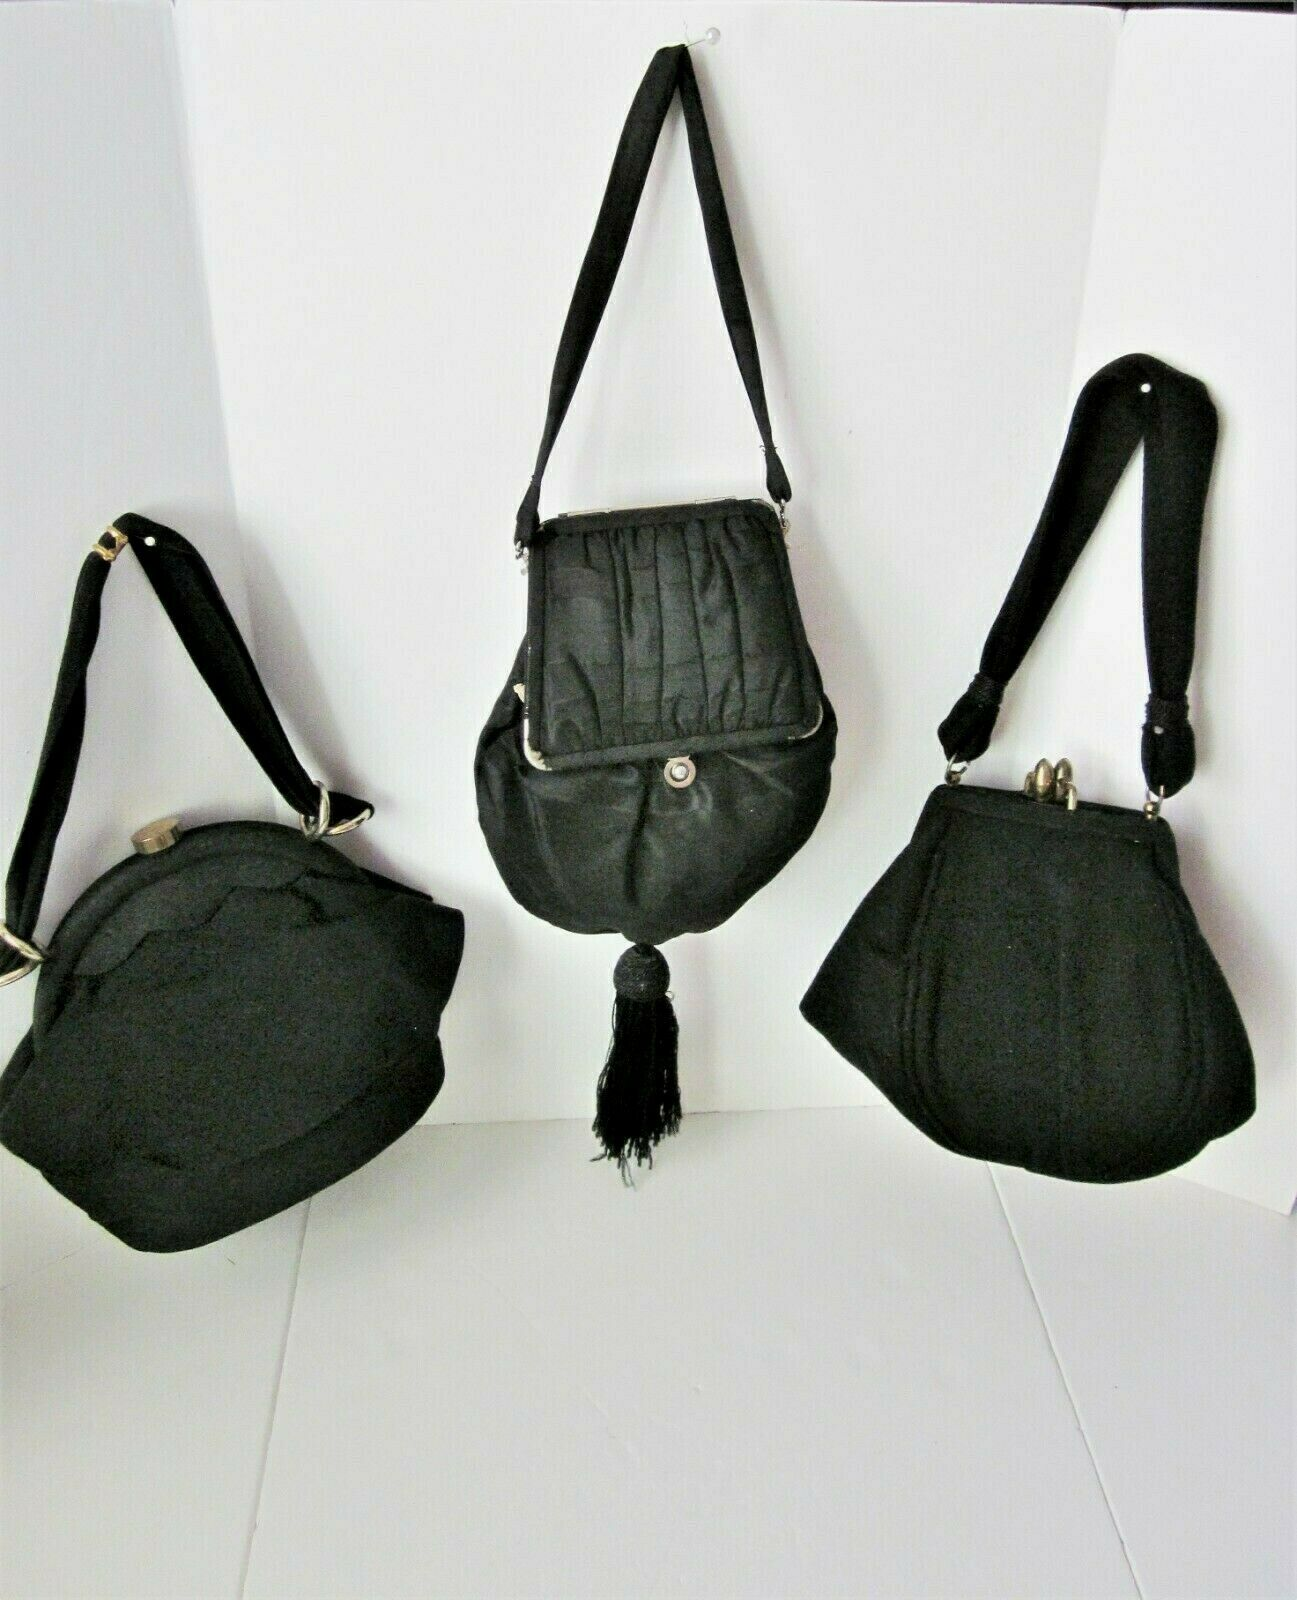 3 Vintage Black 1940's-50's Evening Bags with Coin Purses, Taffeta, Satin & Wool